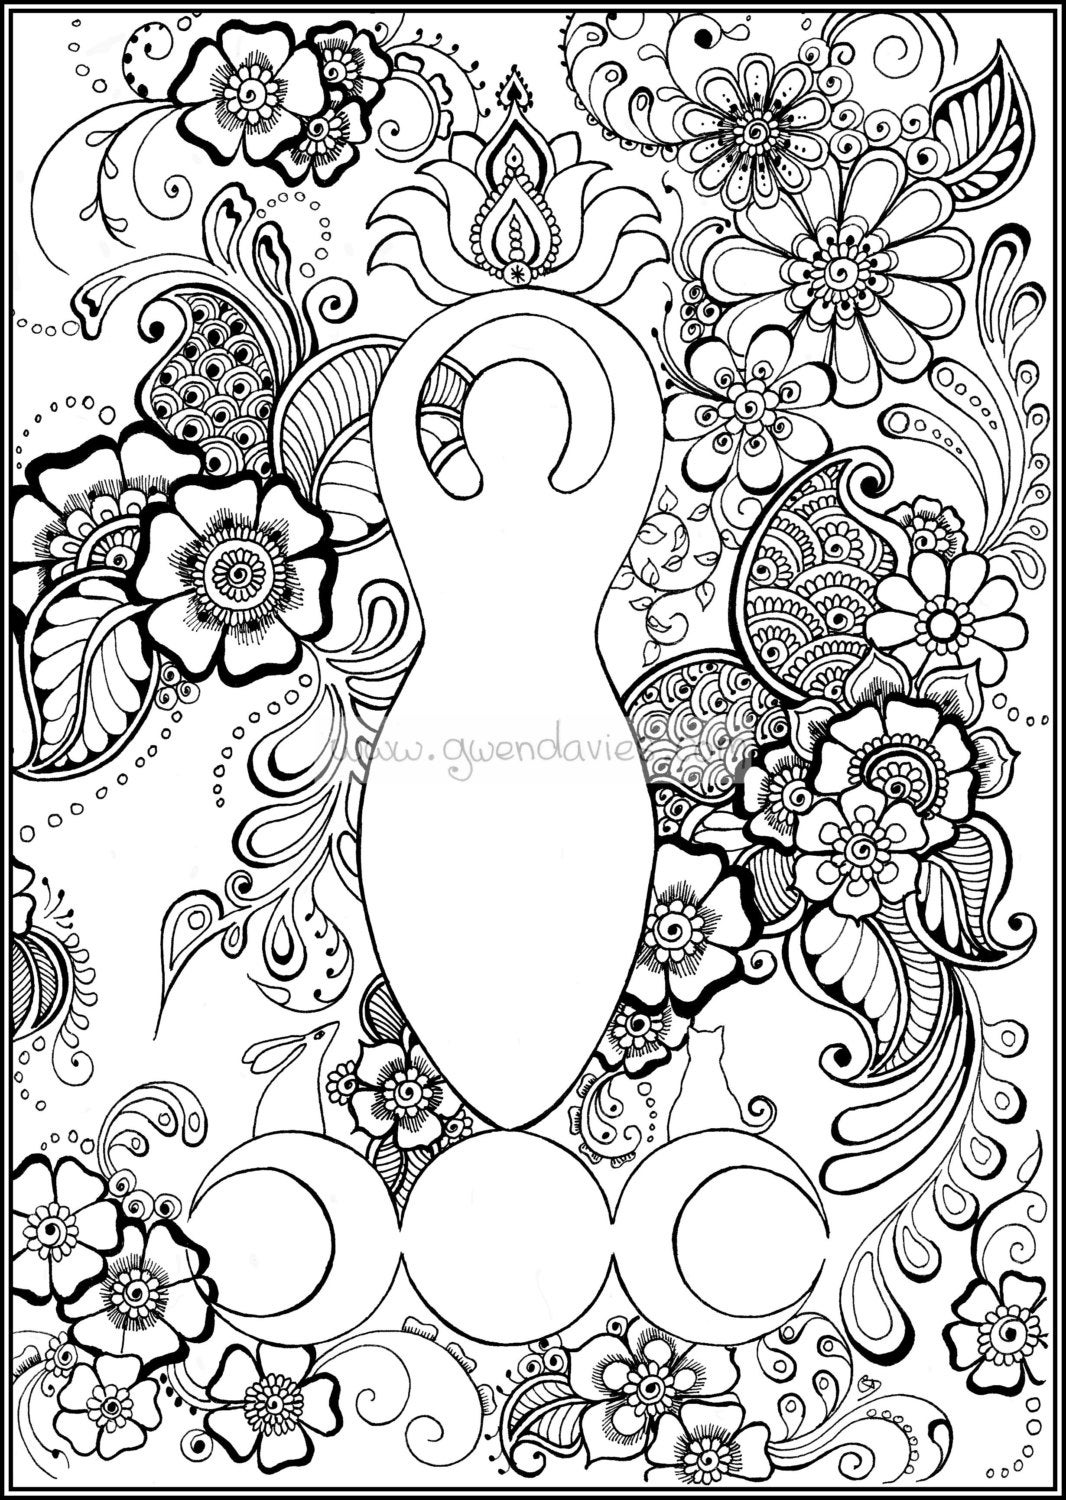 wicca coloring pages | Colour the Goddess zentangle colouring sheet A4 Pagan art